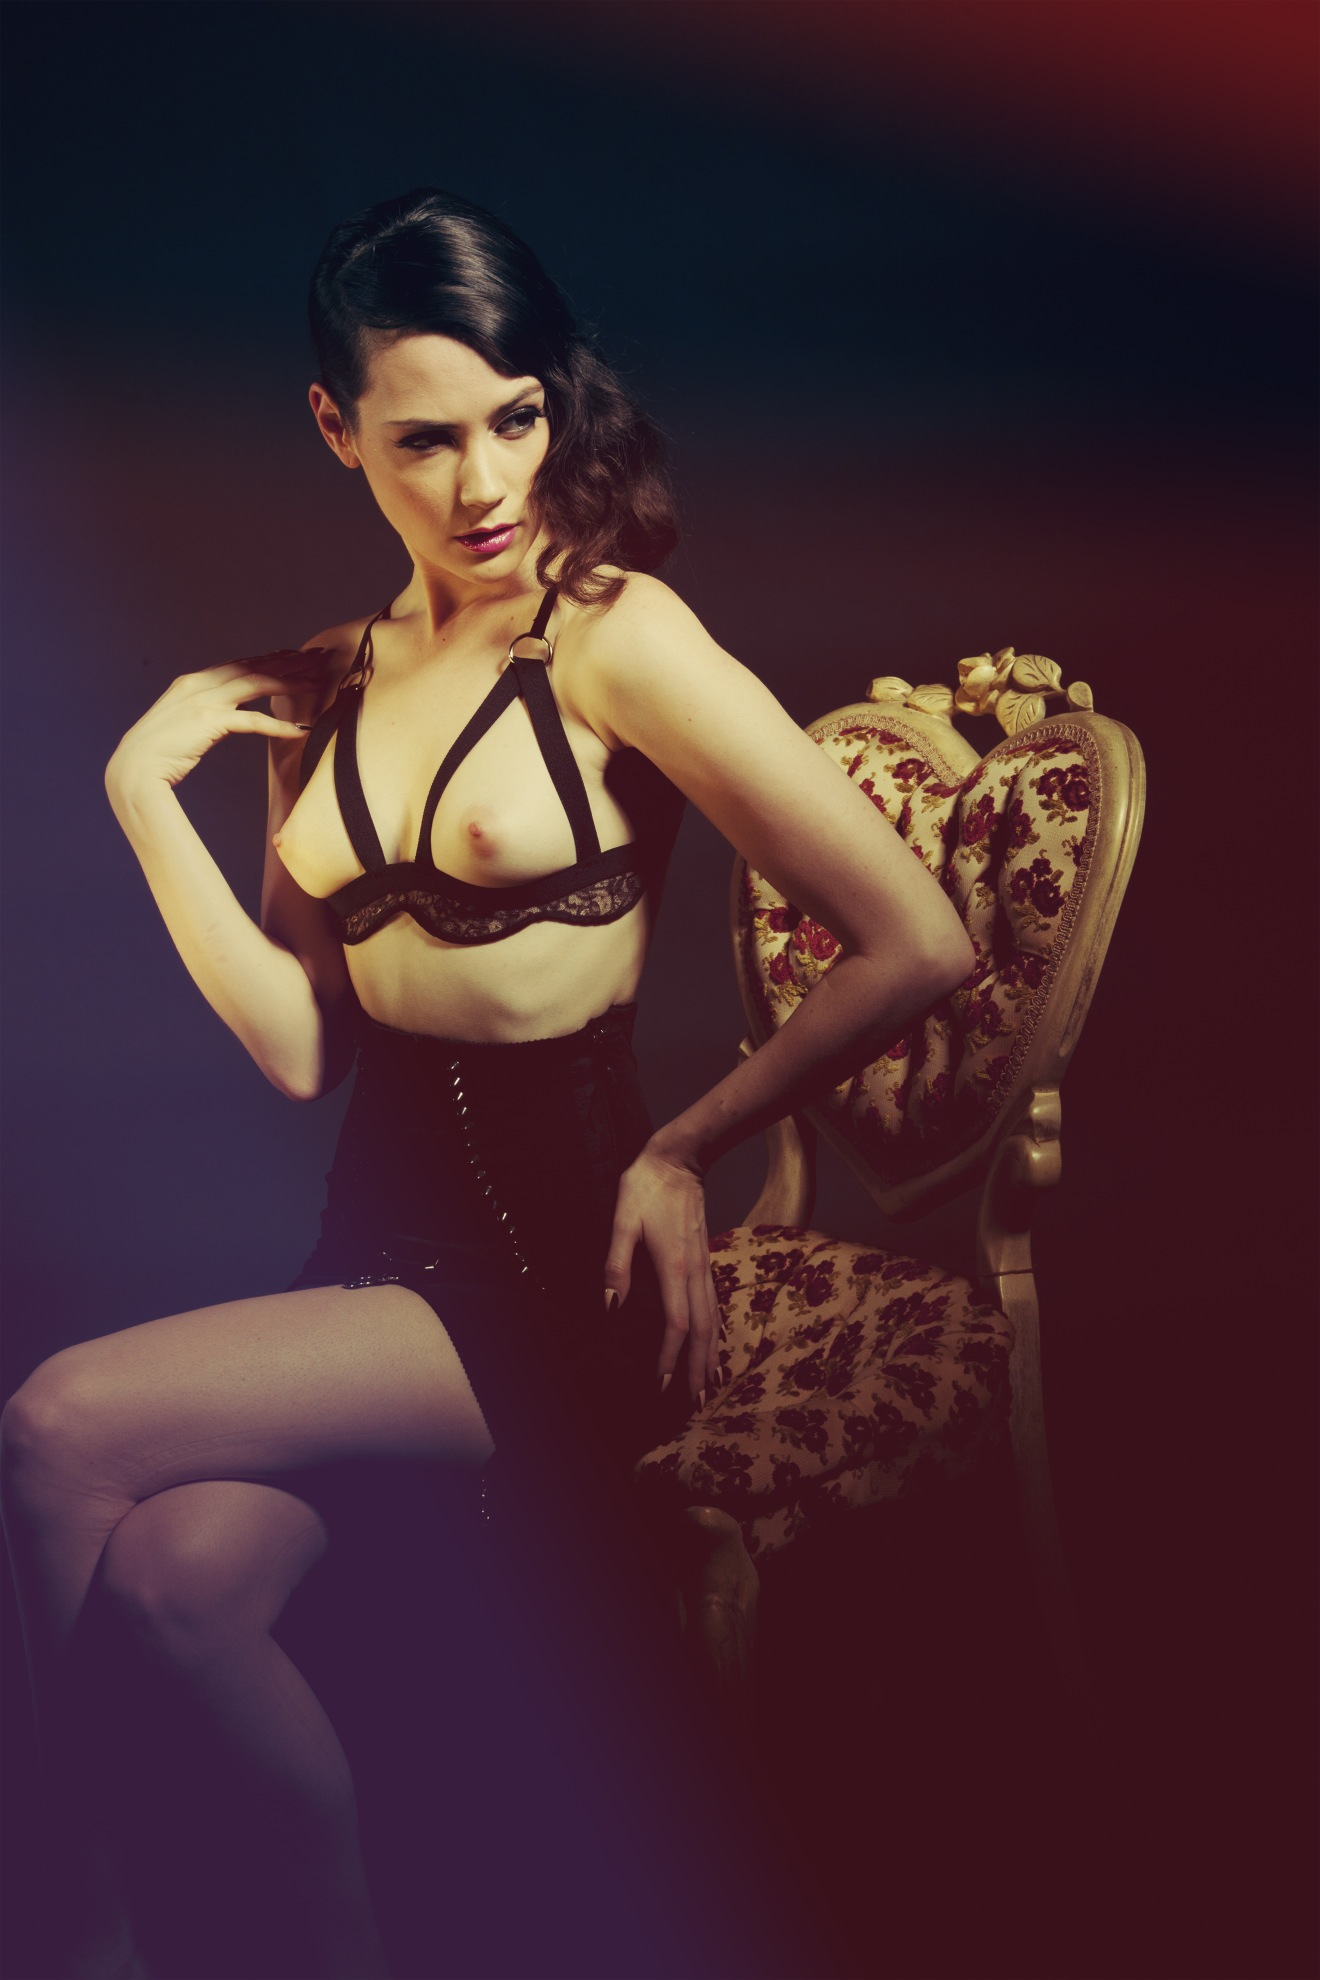 Between the Sheets - Designer Lingerie collections & Luxury Loungewear brand based in New York and Made in USA. Luxury lingerie & sleepwear for everday, the most luxurious intimates & nightwear for all those moments in between. Featuring Between the Sheets Collection and Specimens of .